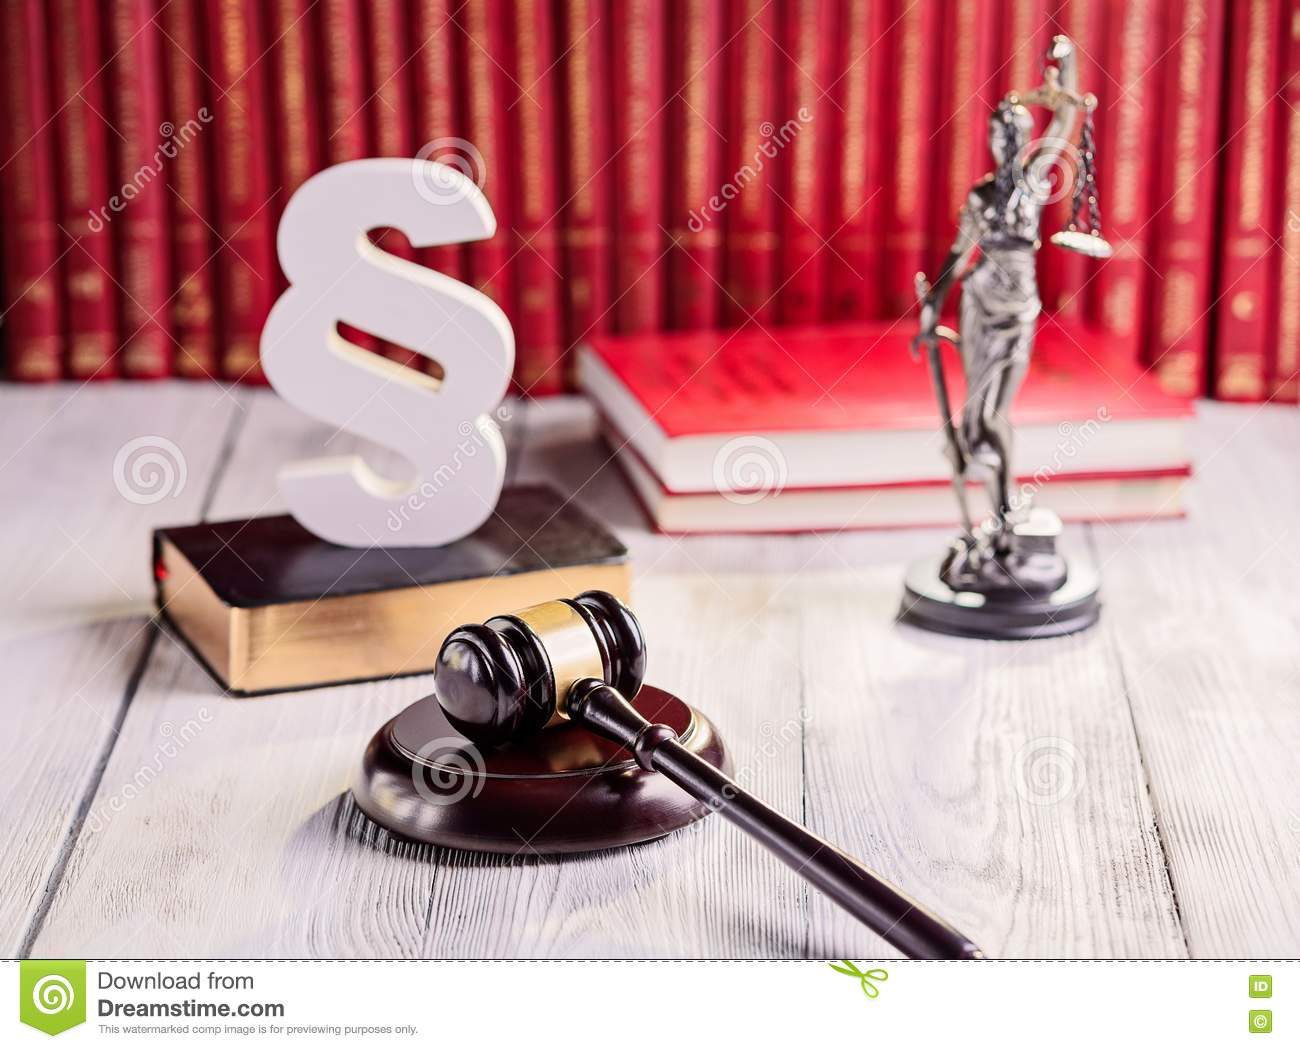 Symbols Of Law In Court Library Stock Photo Image Of Book Gavel